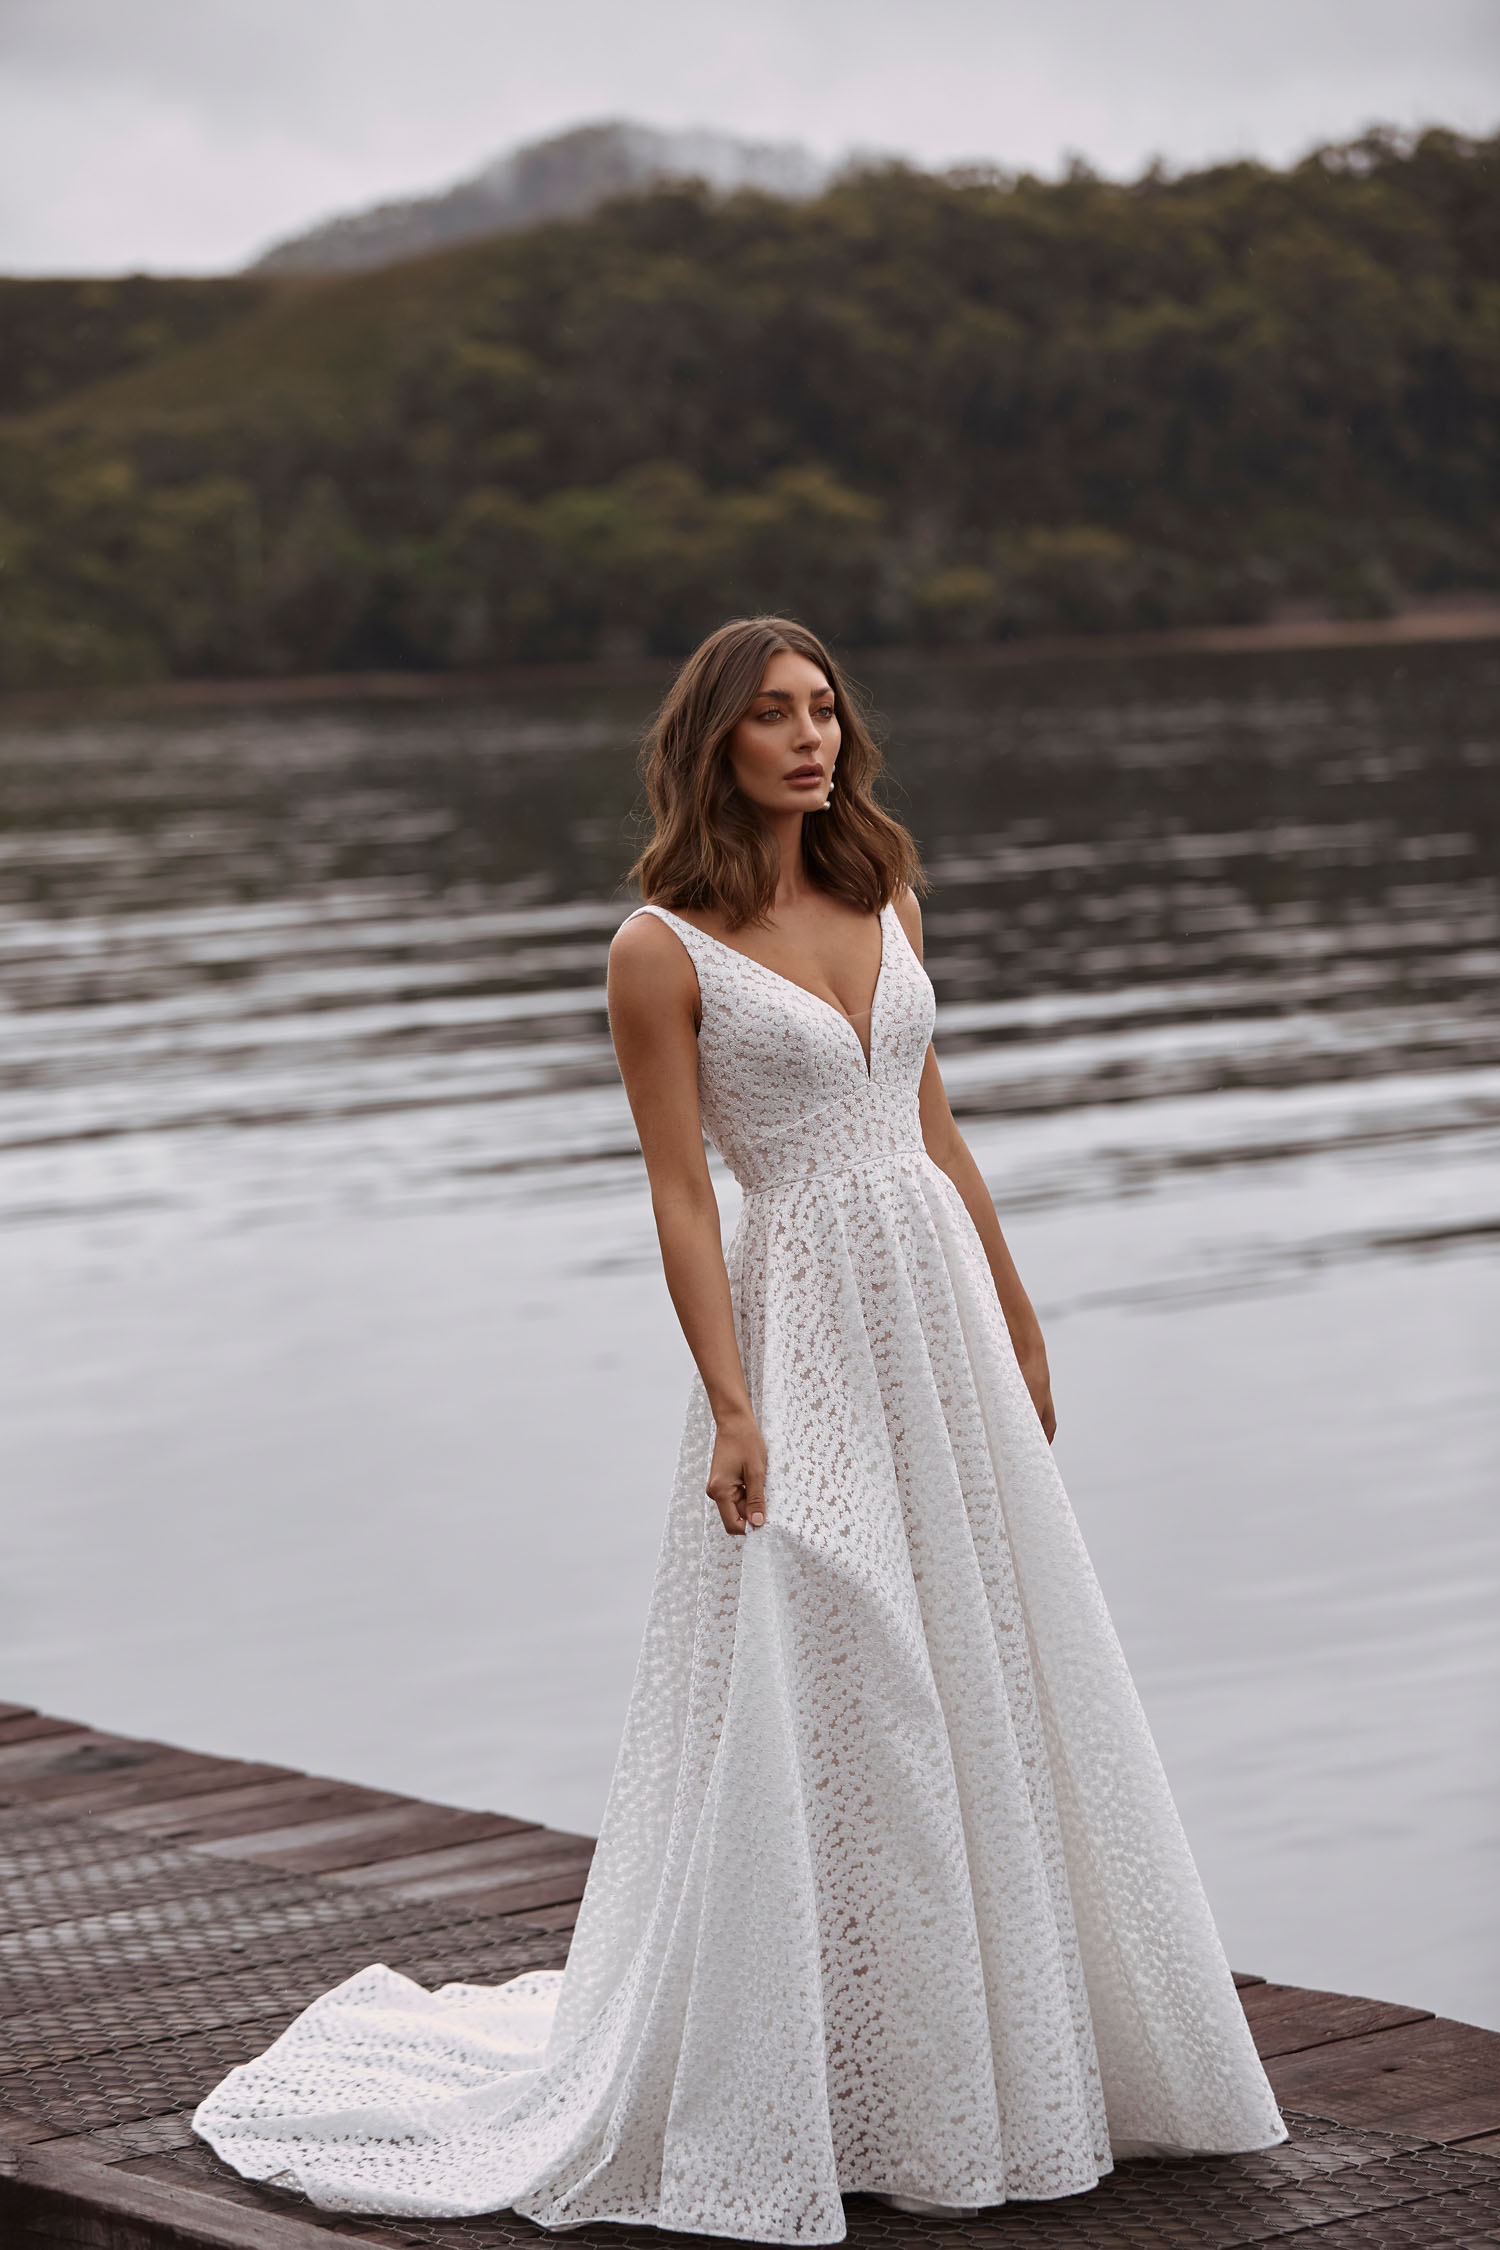 Clara Ml20038 Full Length A Line Gown With Deep V Neckline Fitted Waist All Over Embroidered Lace V Back And Zipper Closure Wedding Dress Madi Lane Bridal 1